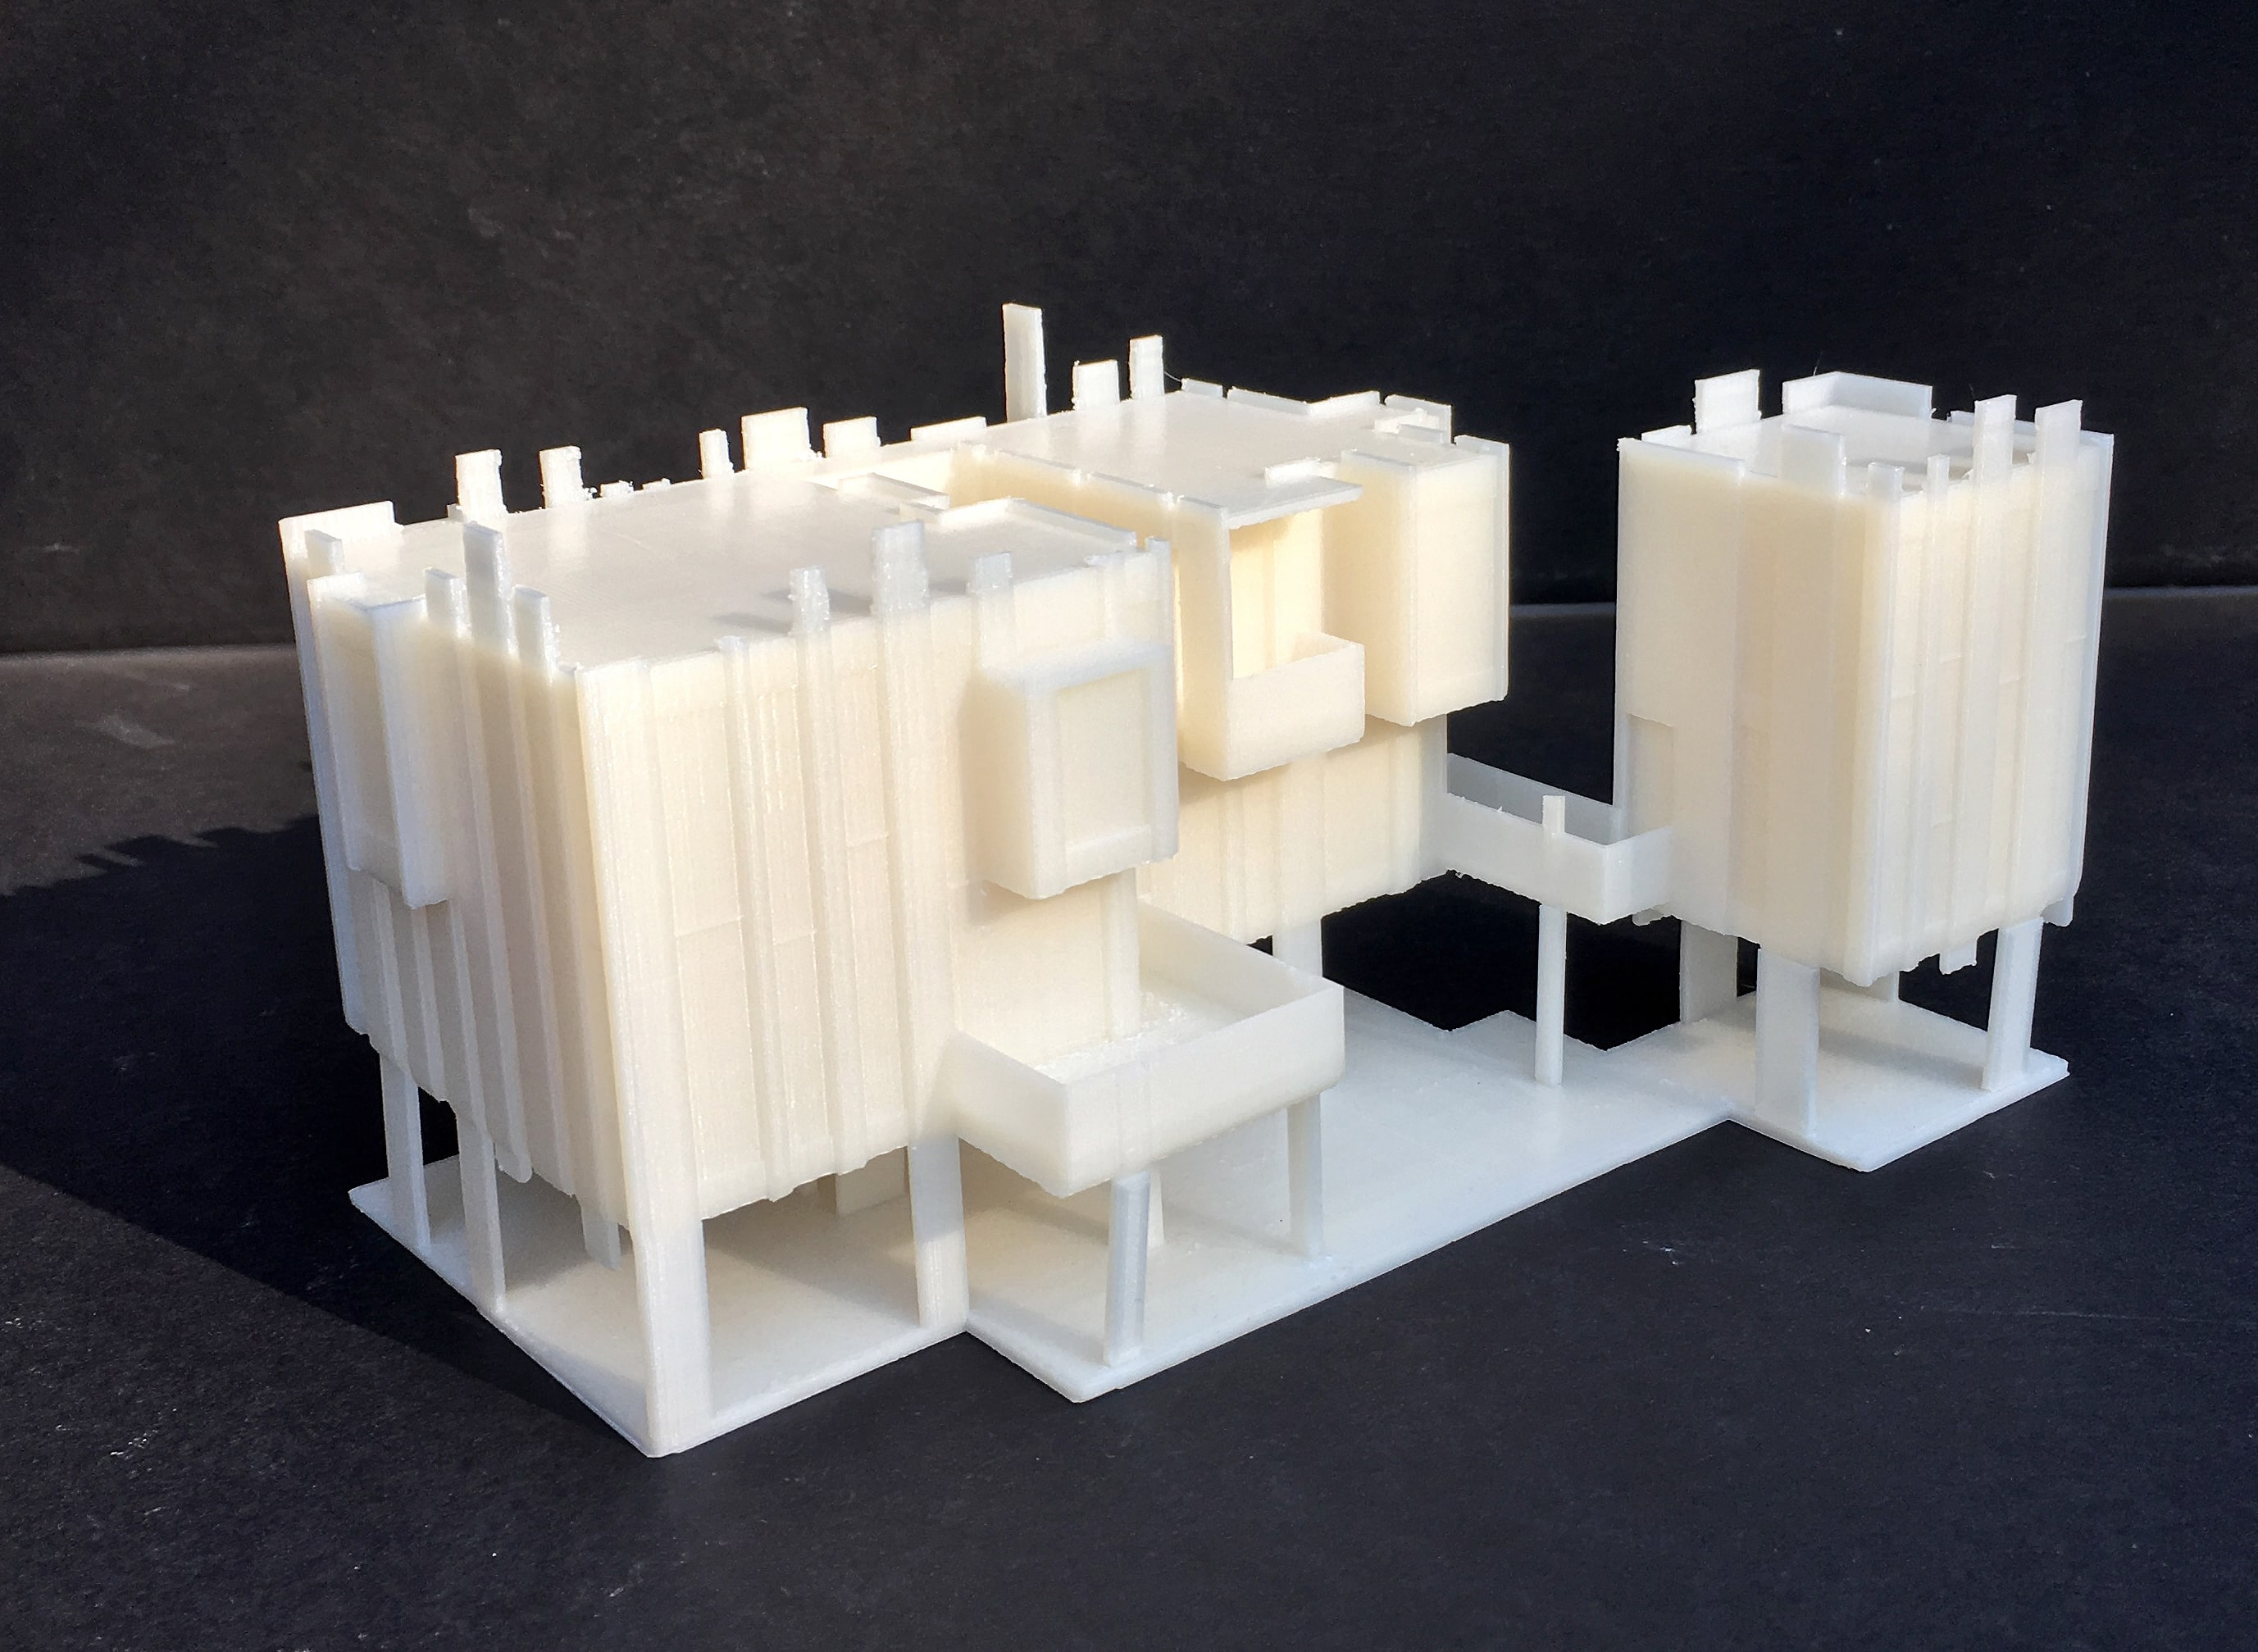 10 of the Best 3D Printers for Architects in 2019 Reviewed ...